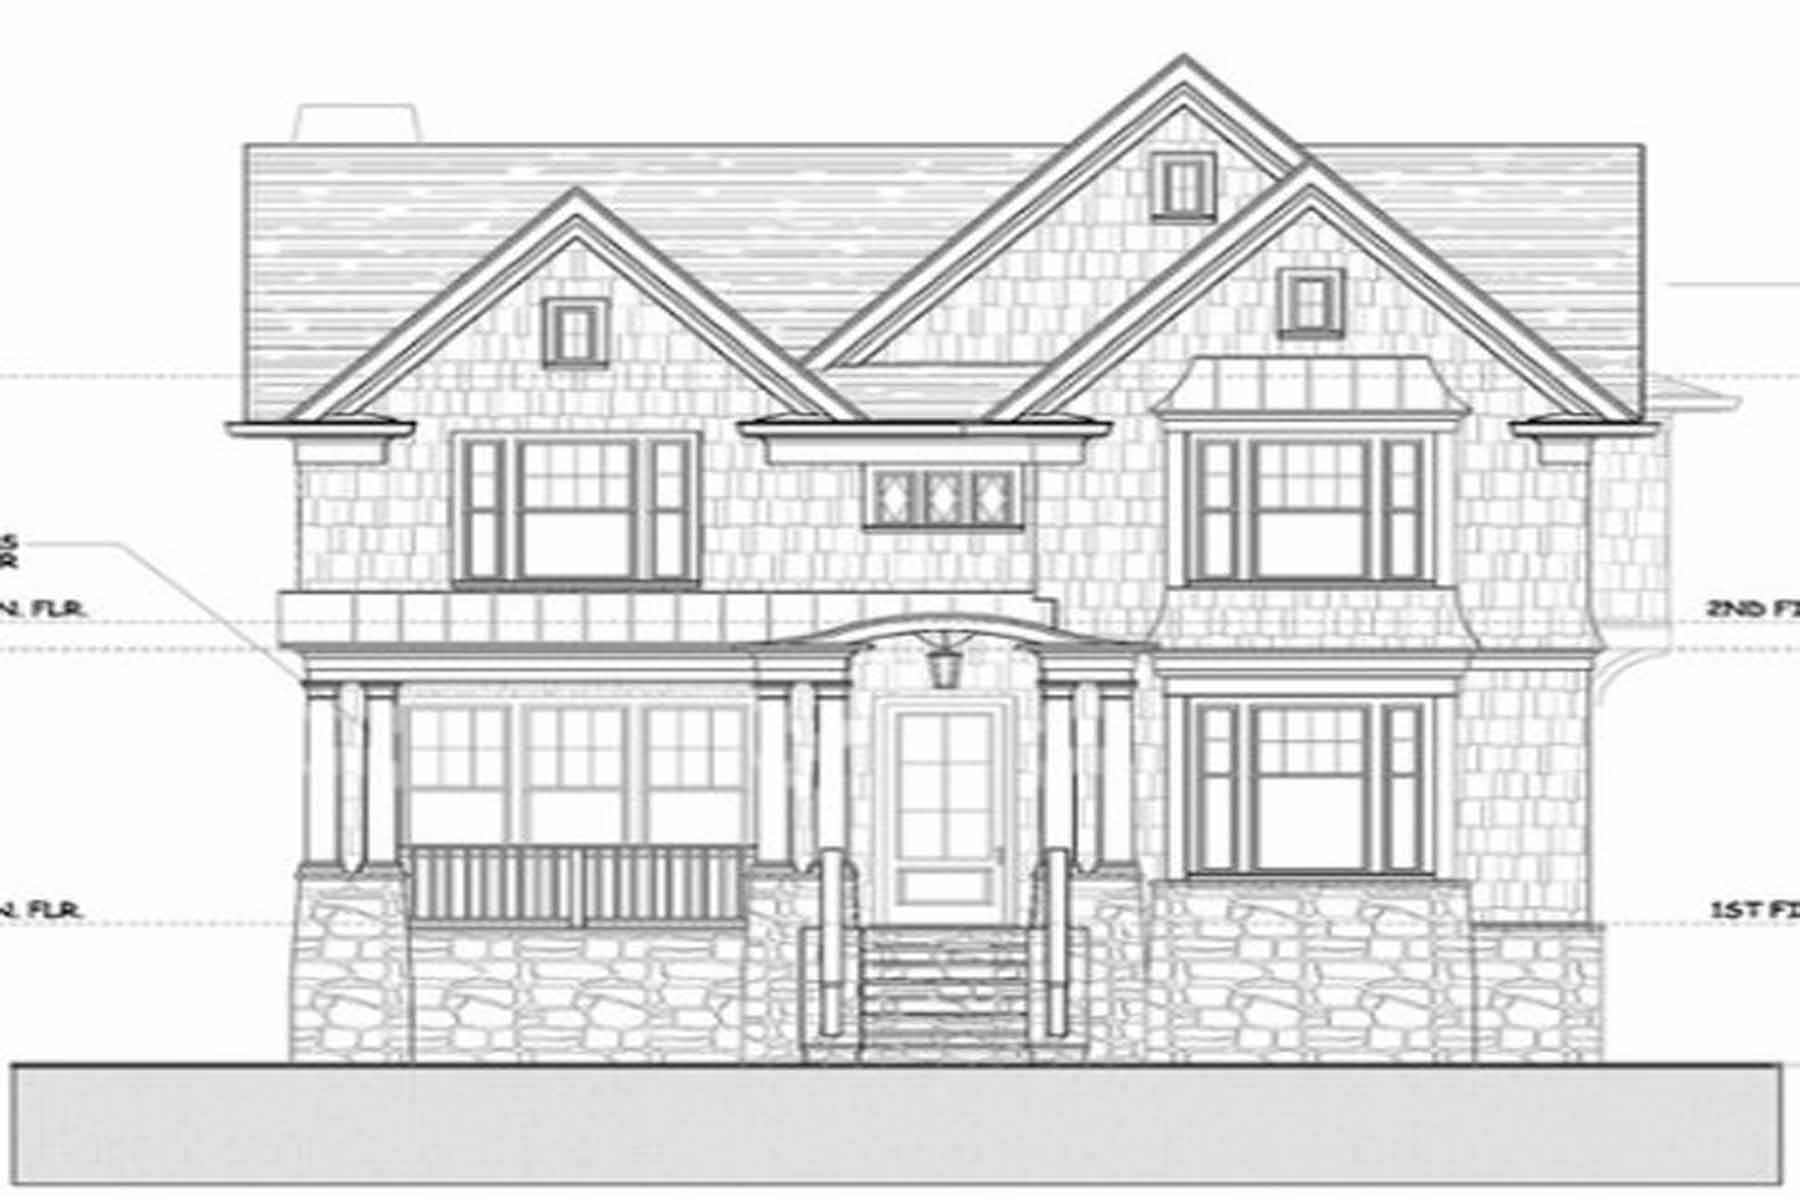 Single Family Home for Sale at New construction by JackBilt Homes. 797 Yorkshire Road NE Morningside, Atlanta, Georgia, 30306 United States